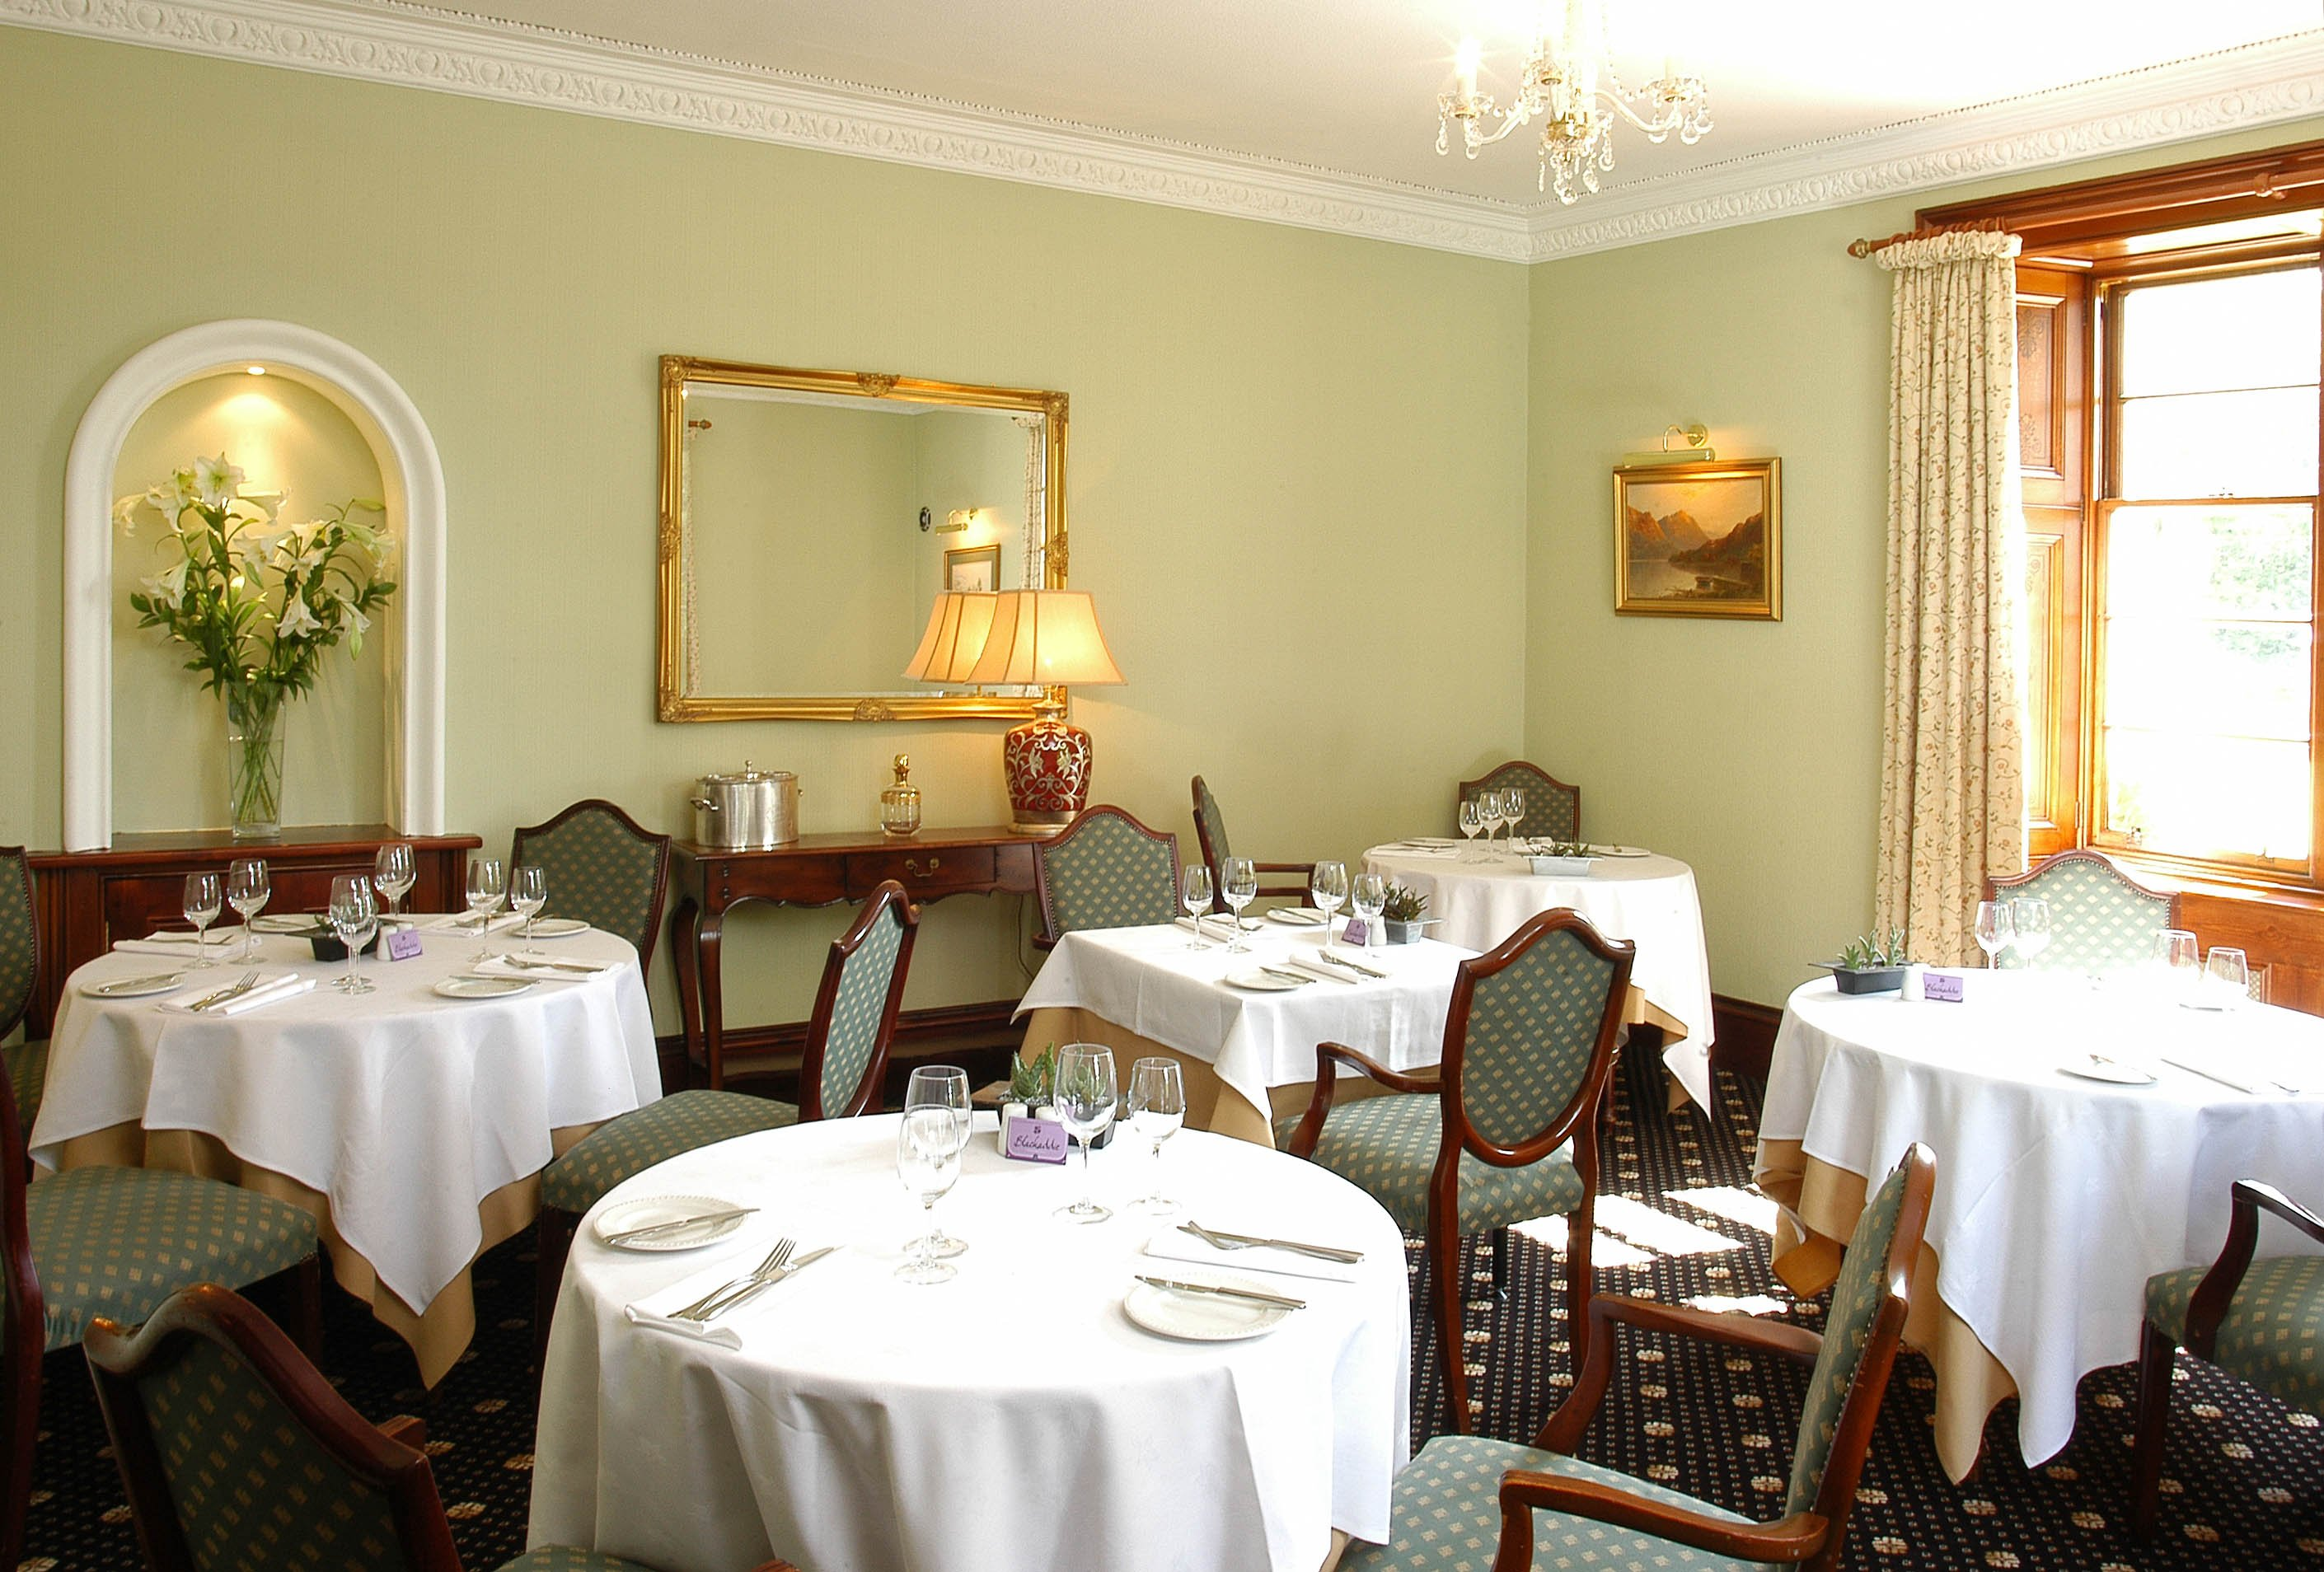 The dining room at Blackaddie House Hotel